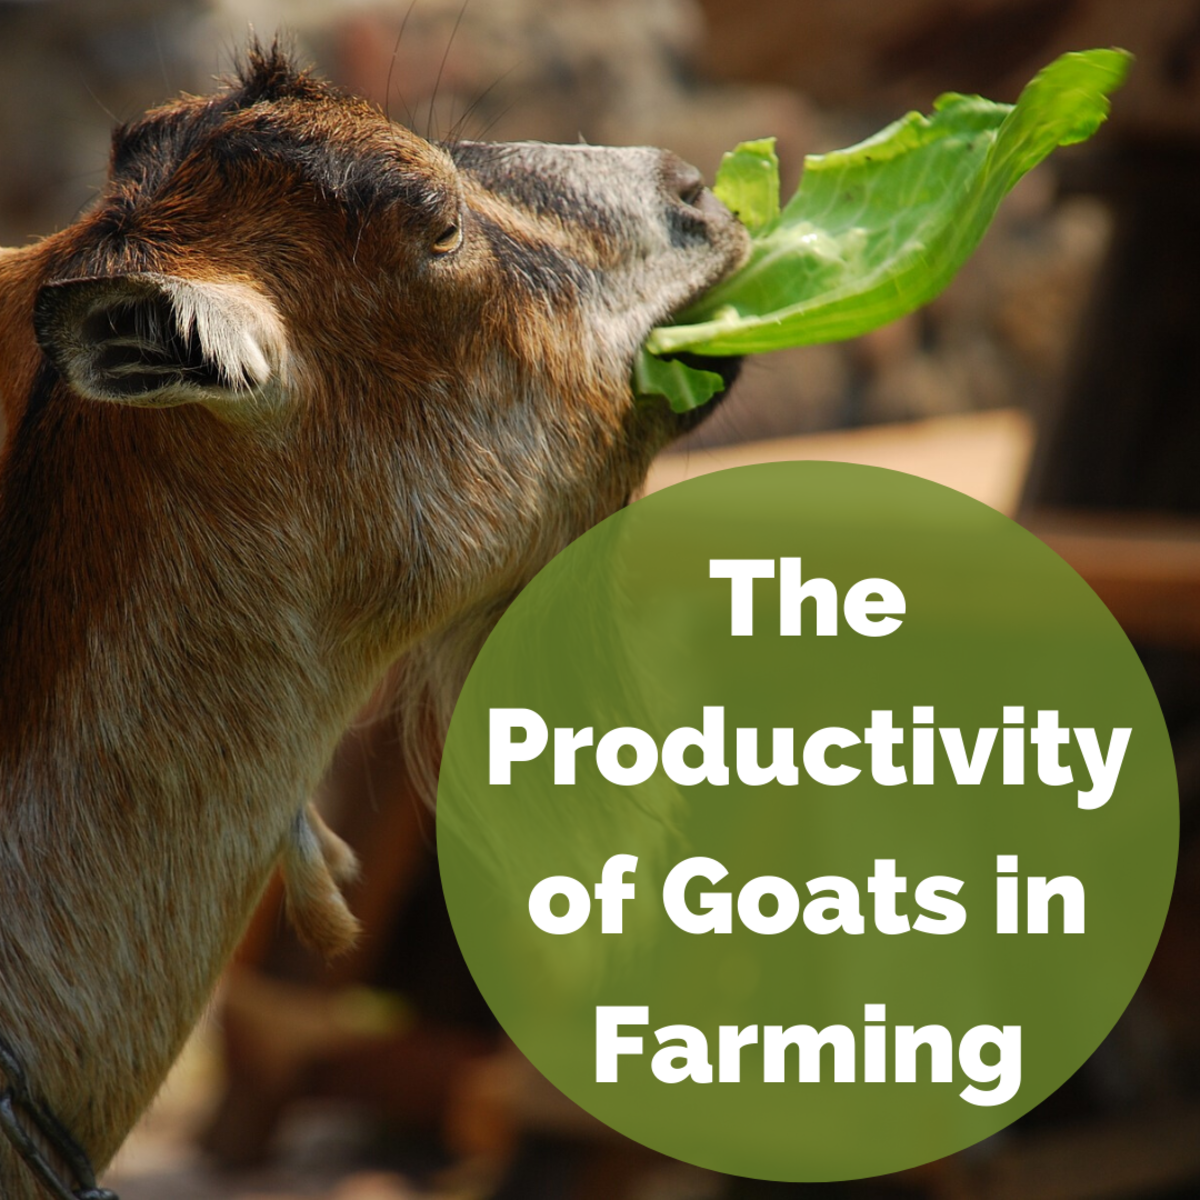 Goats in Farming: Feeding and Productivity